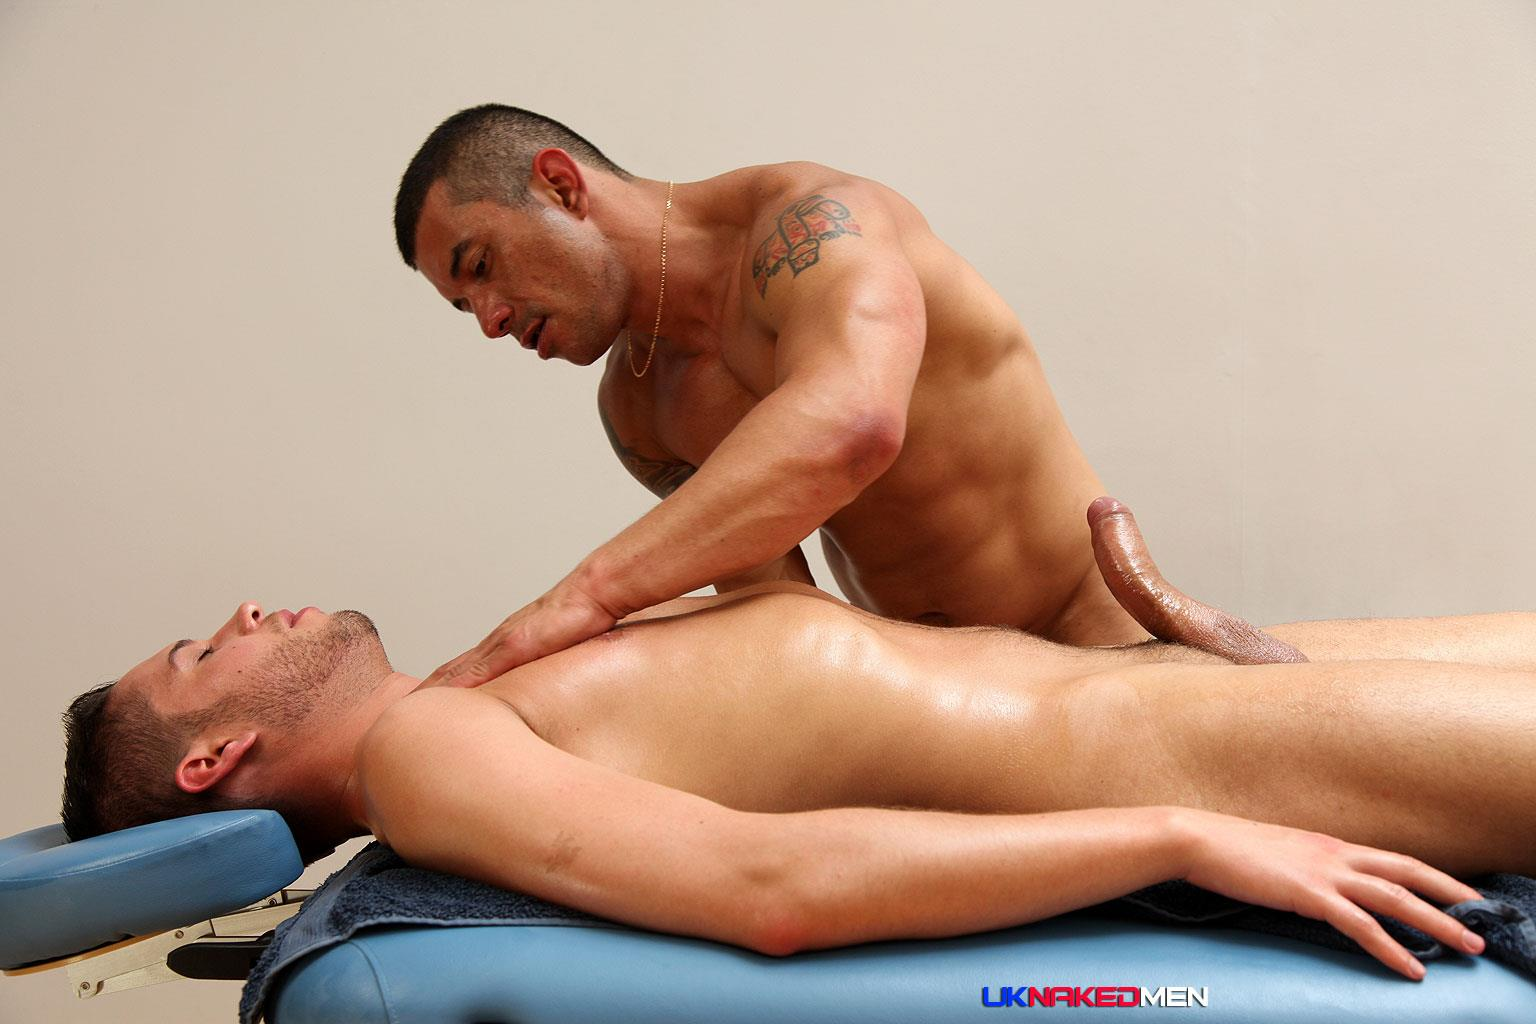 UK Naked Men Gio Cruz and Mark Coxx Big Muscle Uncut Cock Guys Fucking Amateur Gay Porn 11 Muscle Daddy Fucks an Amateur Younger Guy With A Huge Uncut Cock